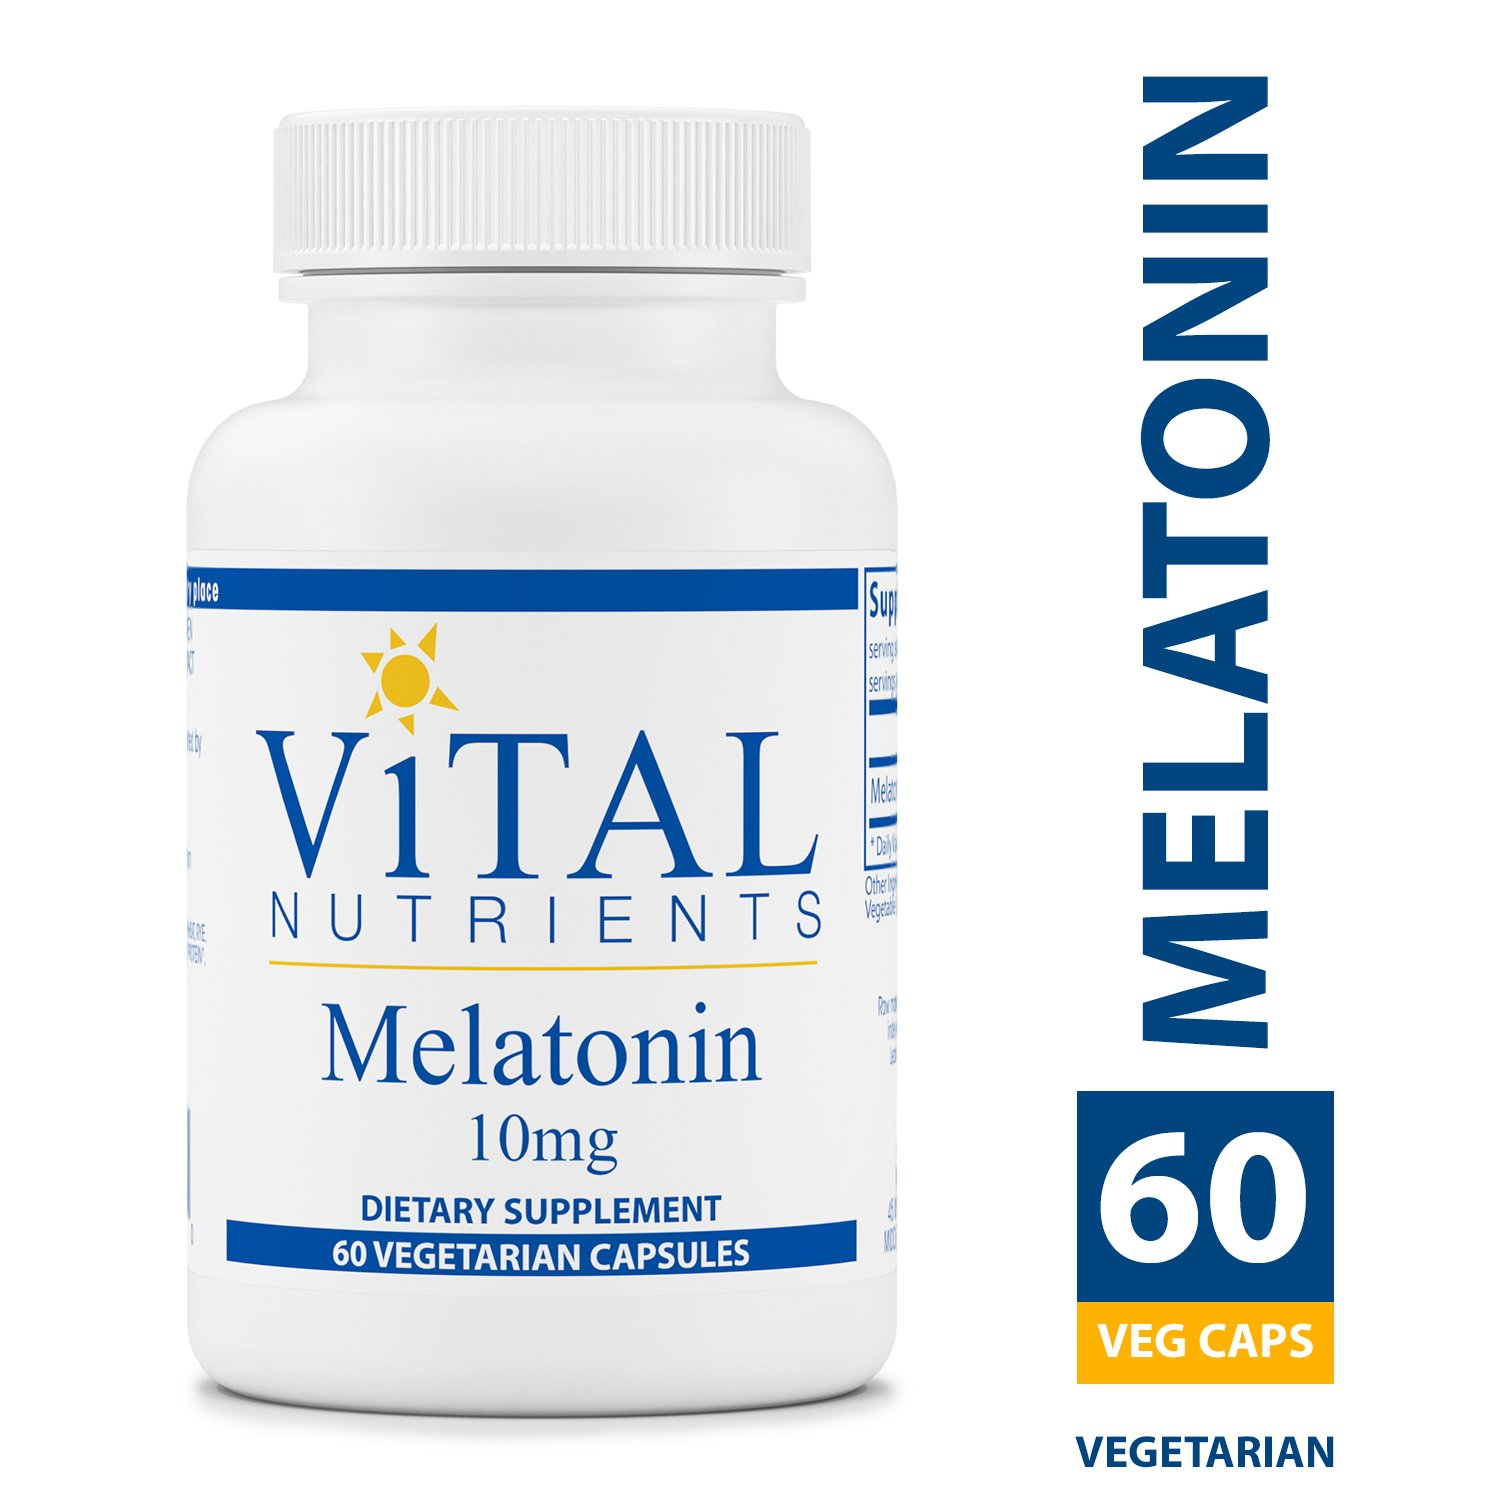 Amazon.com: Vital Nutrients - Melatonin 10 mg - Supports The Bodys Natural Sleep Cycle - 60 Capsules per Bottle: Health & Personal Care